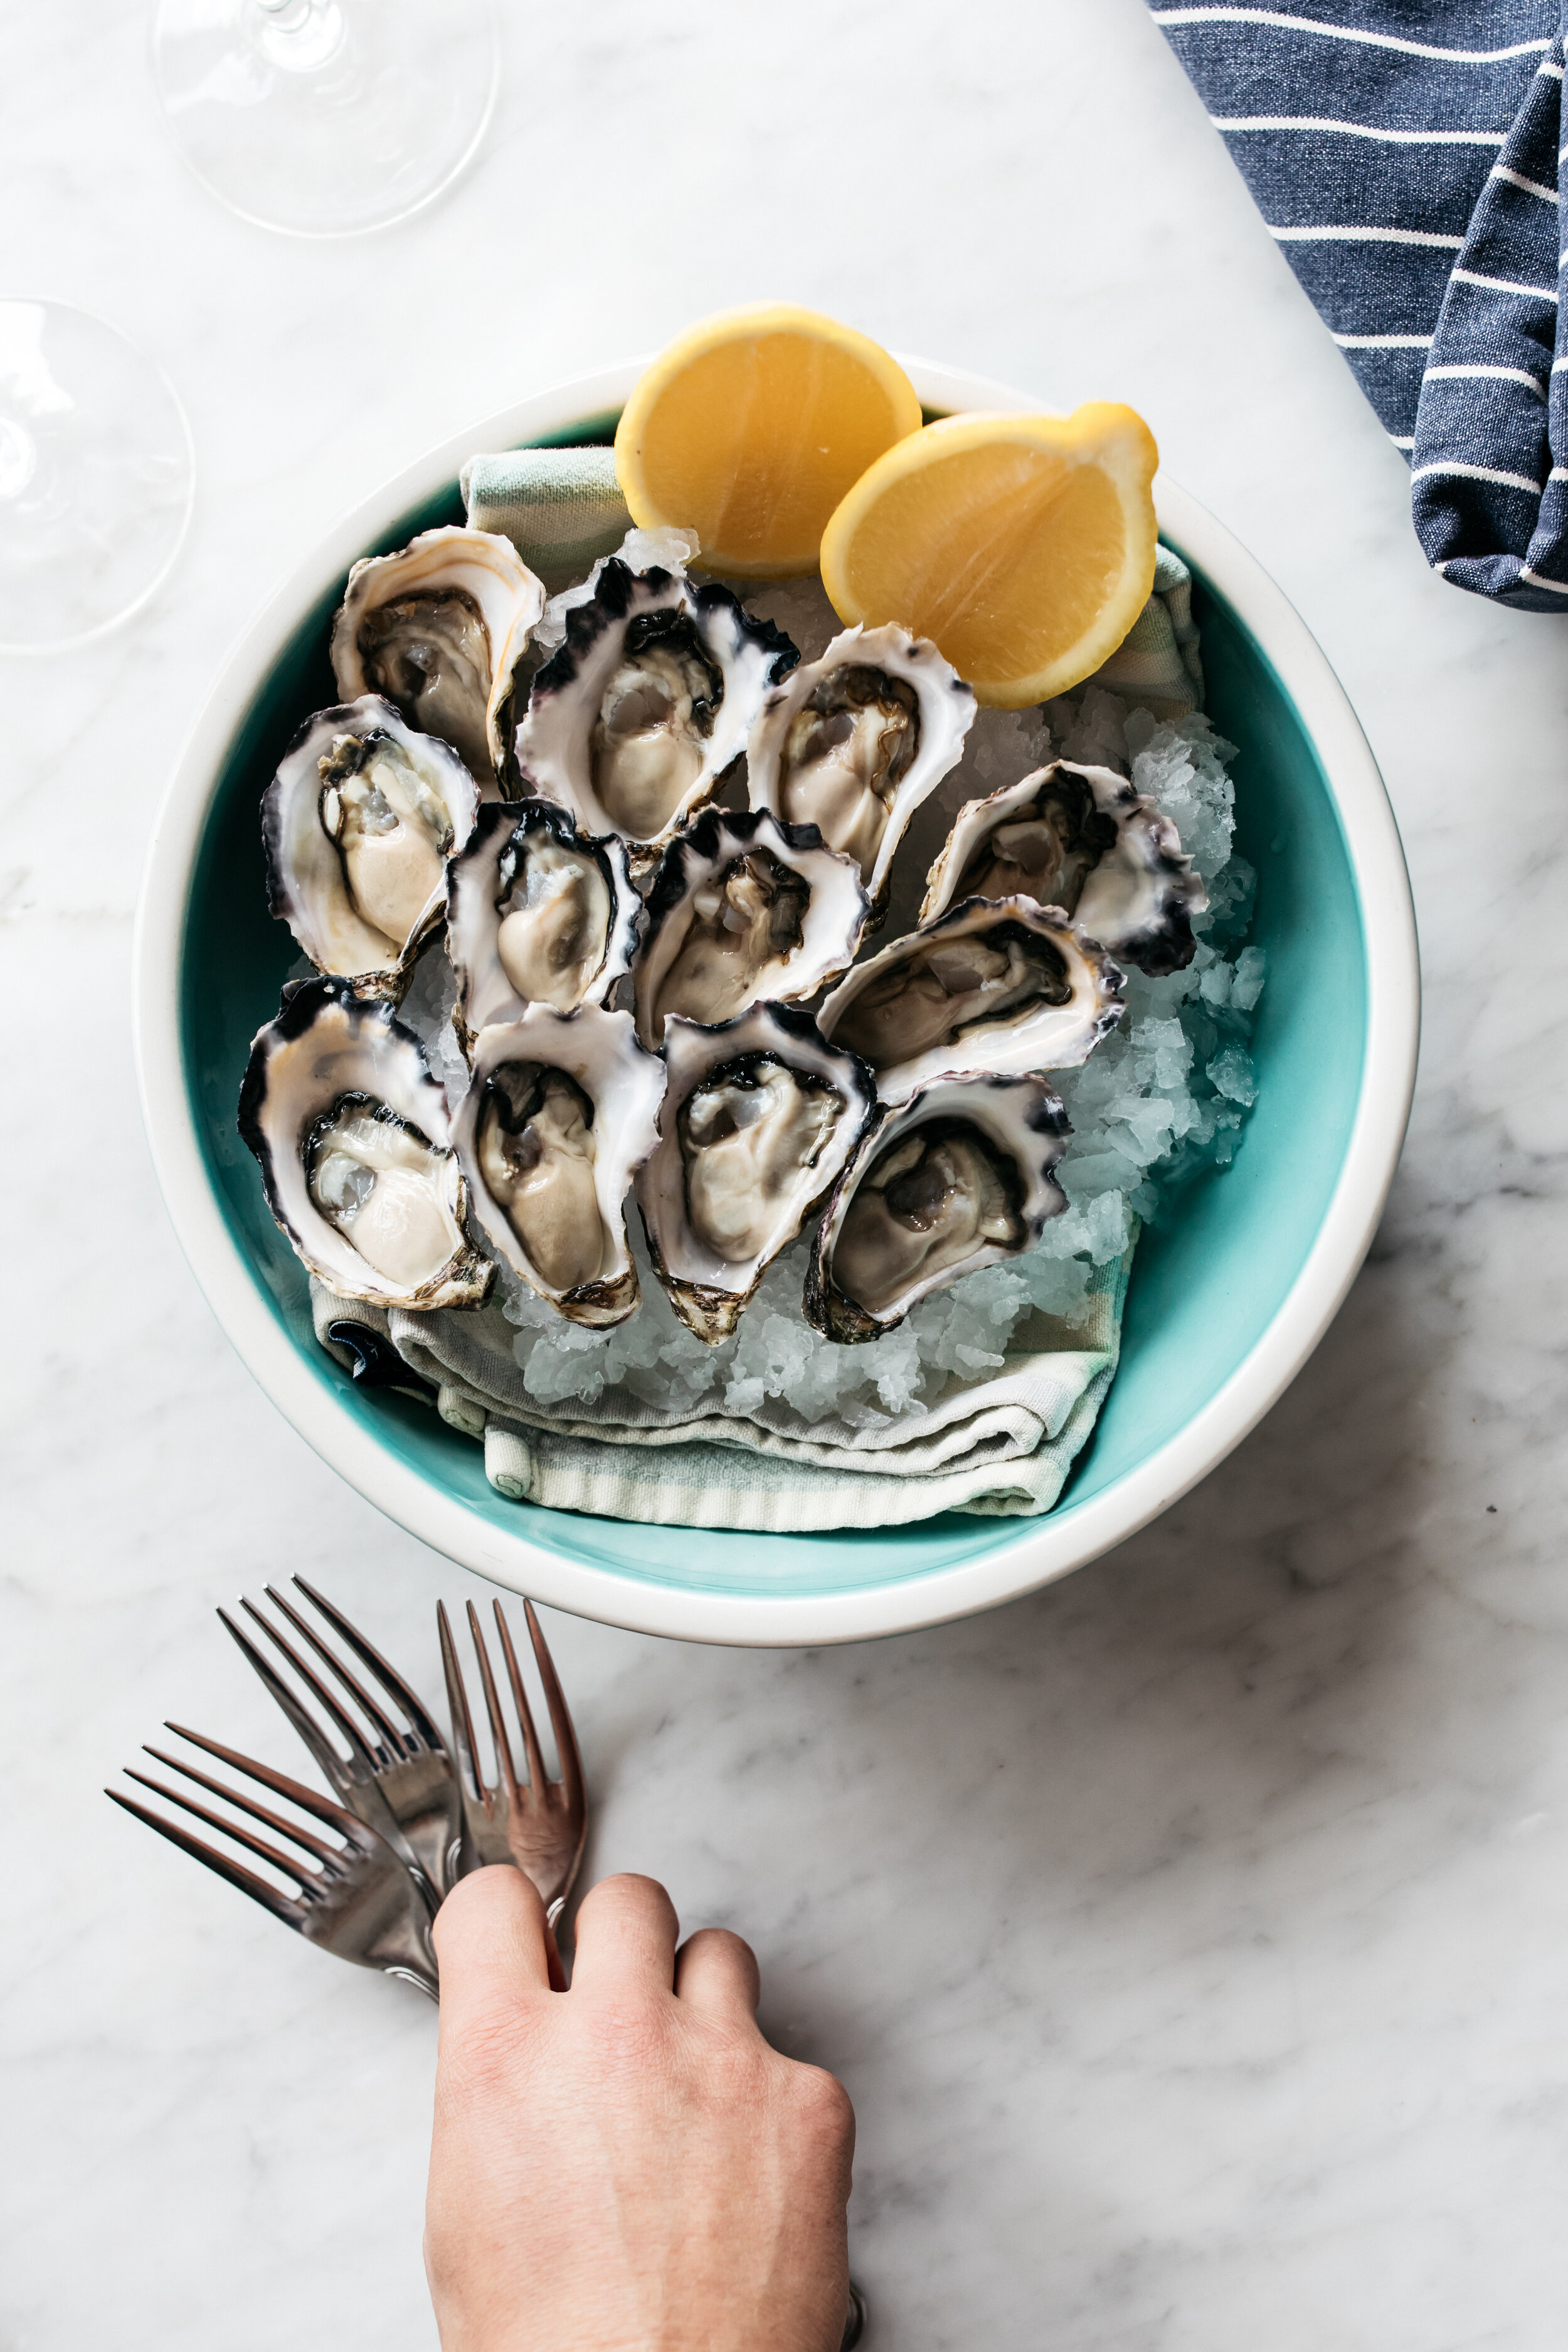 On the menu at Barrenjoey House Palm Beach: Sydney Rock Oysters